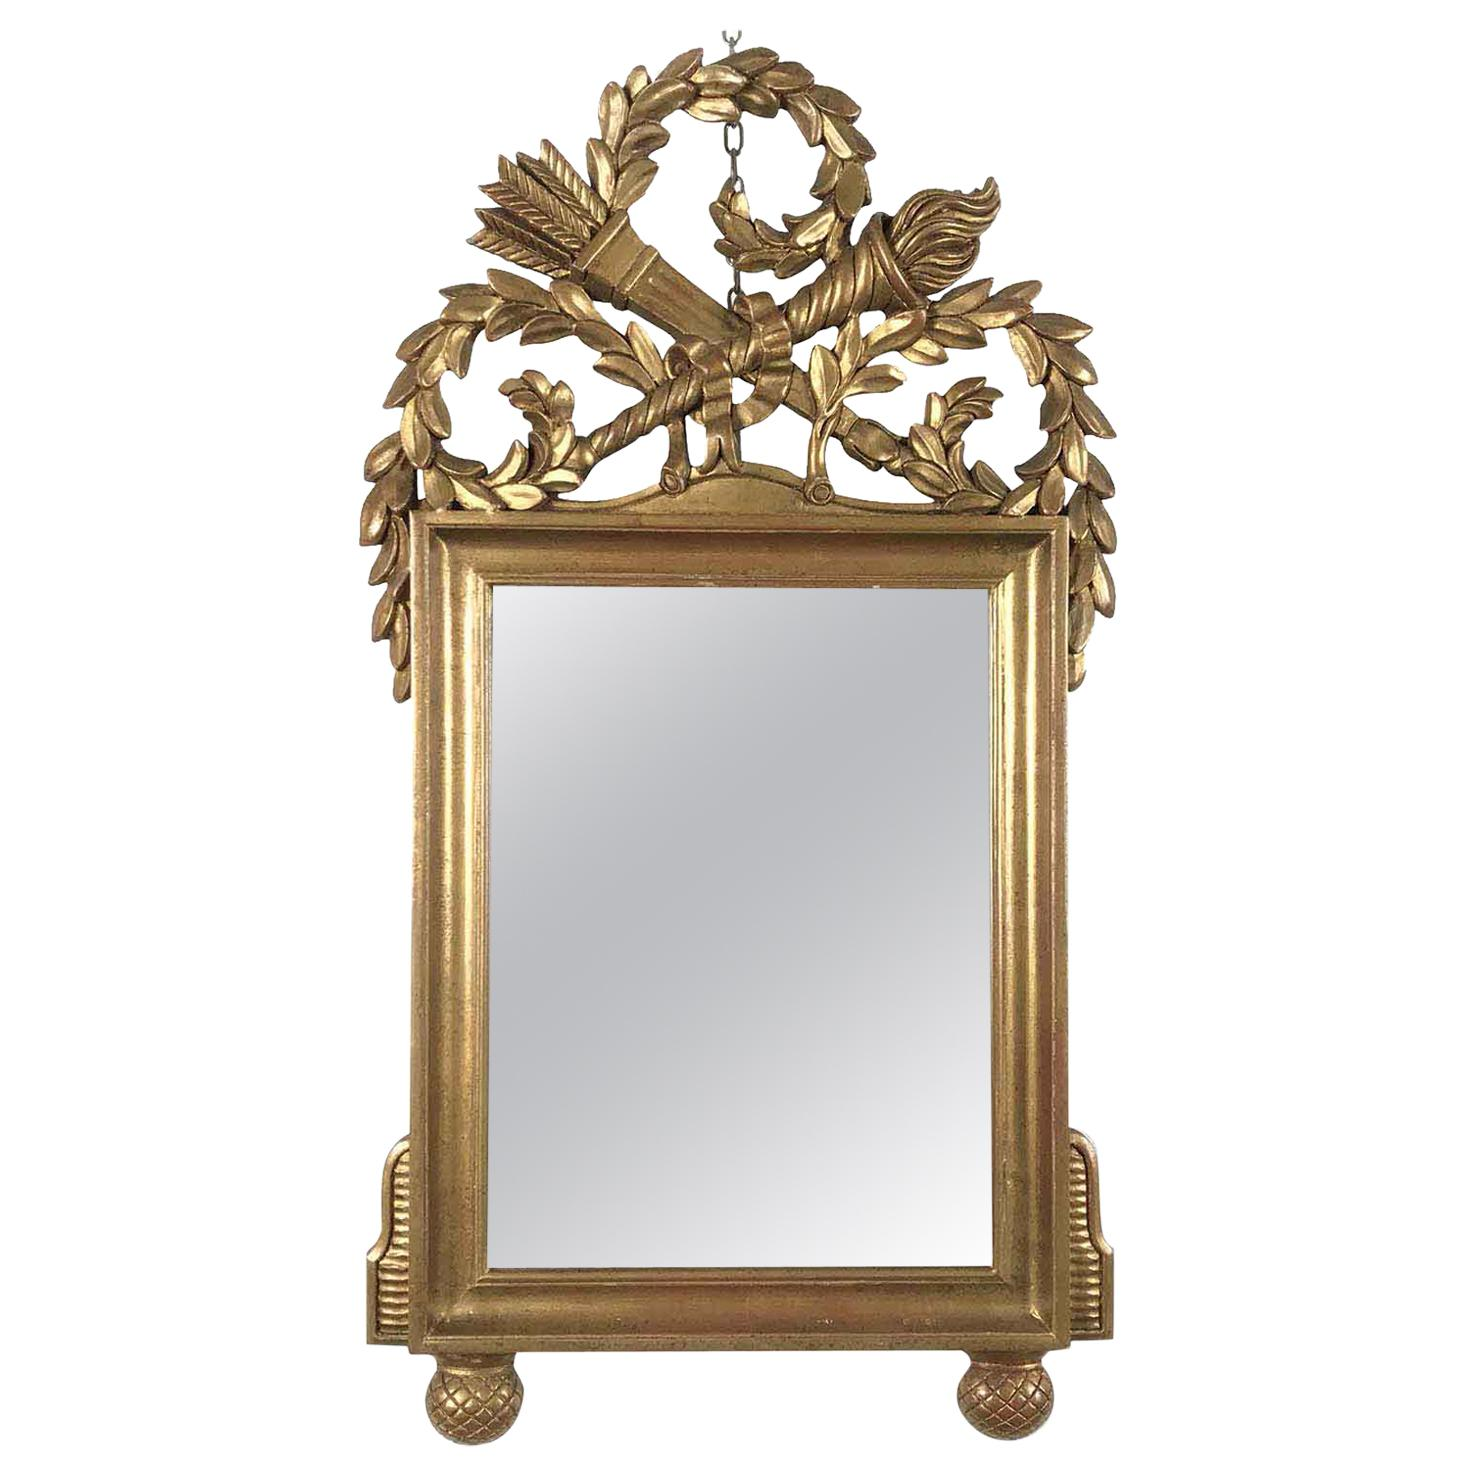 20th Century Italian Empire Style Gold Leaf Gilt Mirror by Chelini Firenze